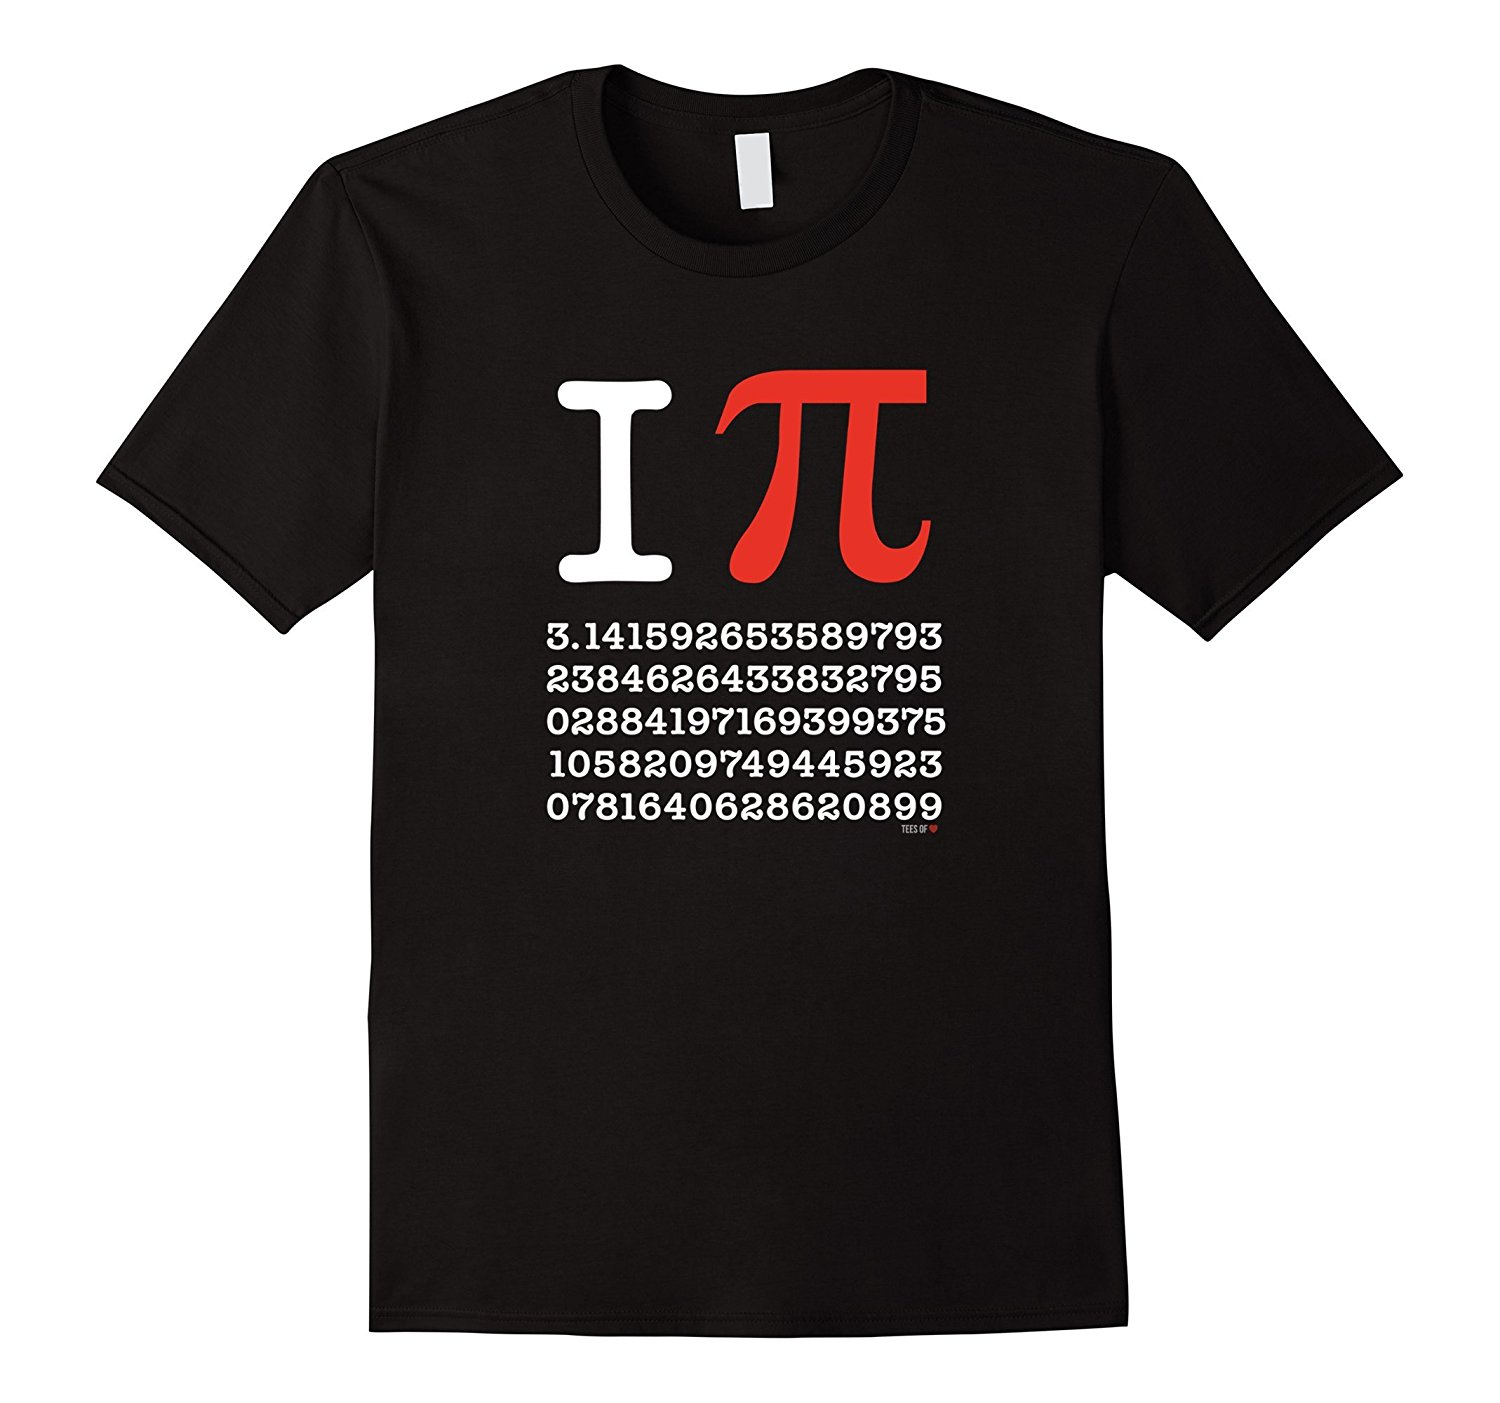 T Shirt Sale O Neck Short Sleeve I Love Pi T Shirt White Pythagoras Theory Symbol Tee Shirt 100% Cotton Tee For Men